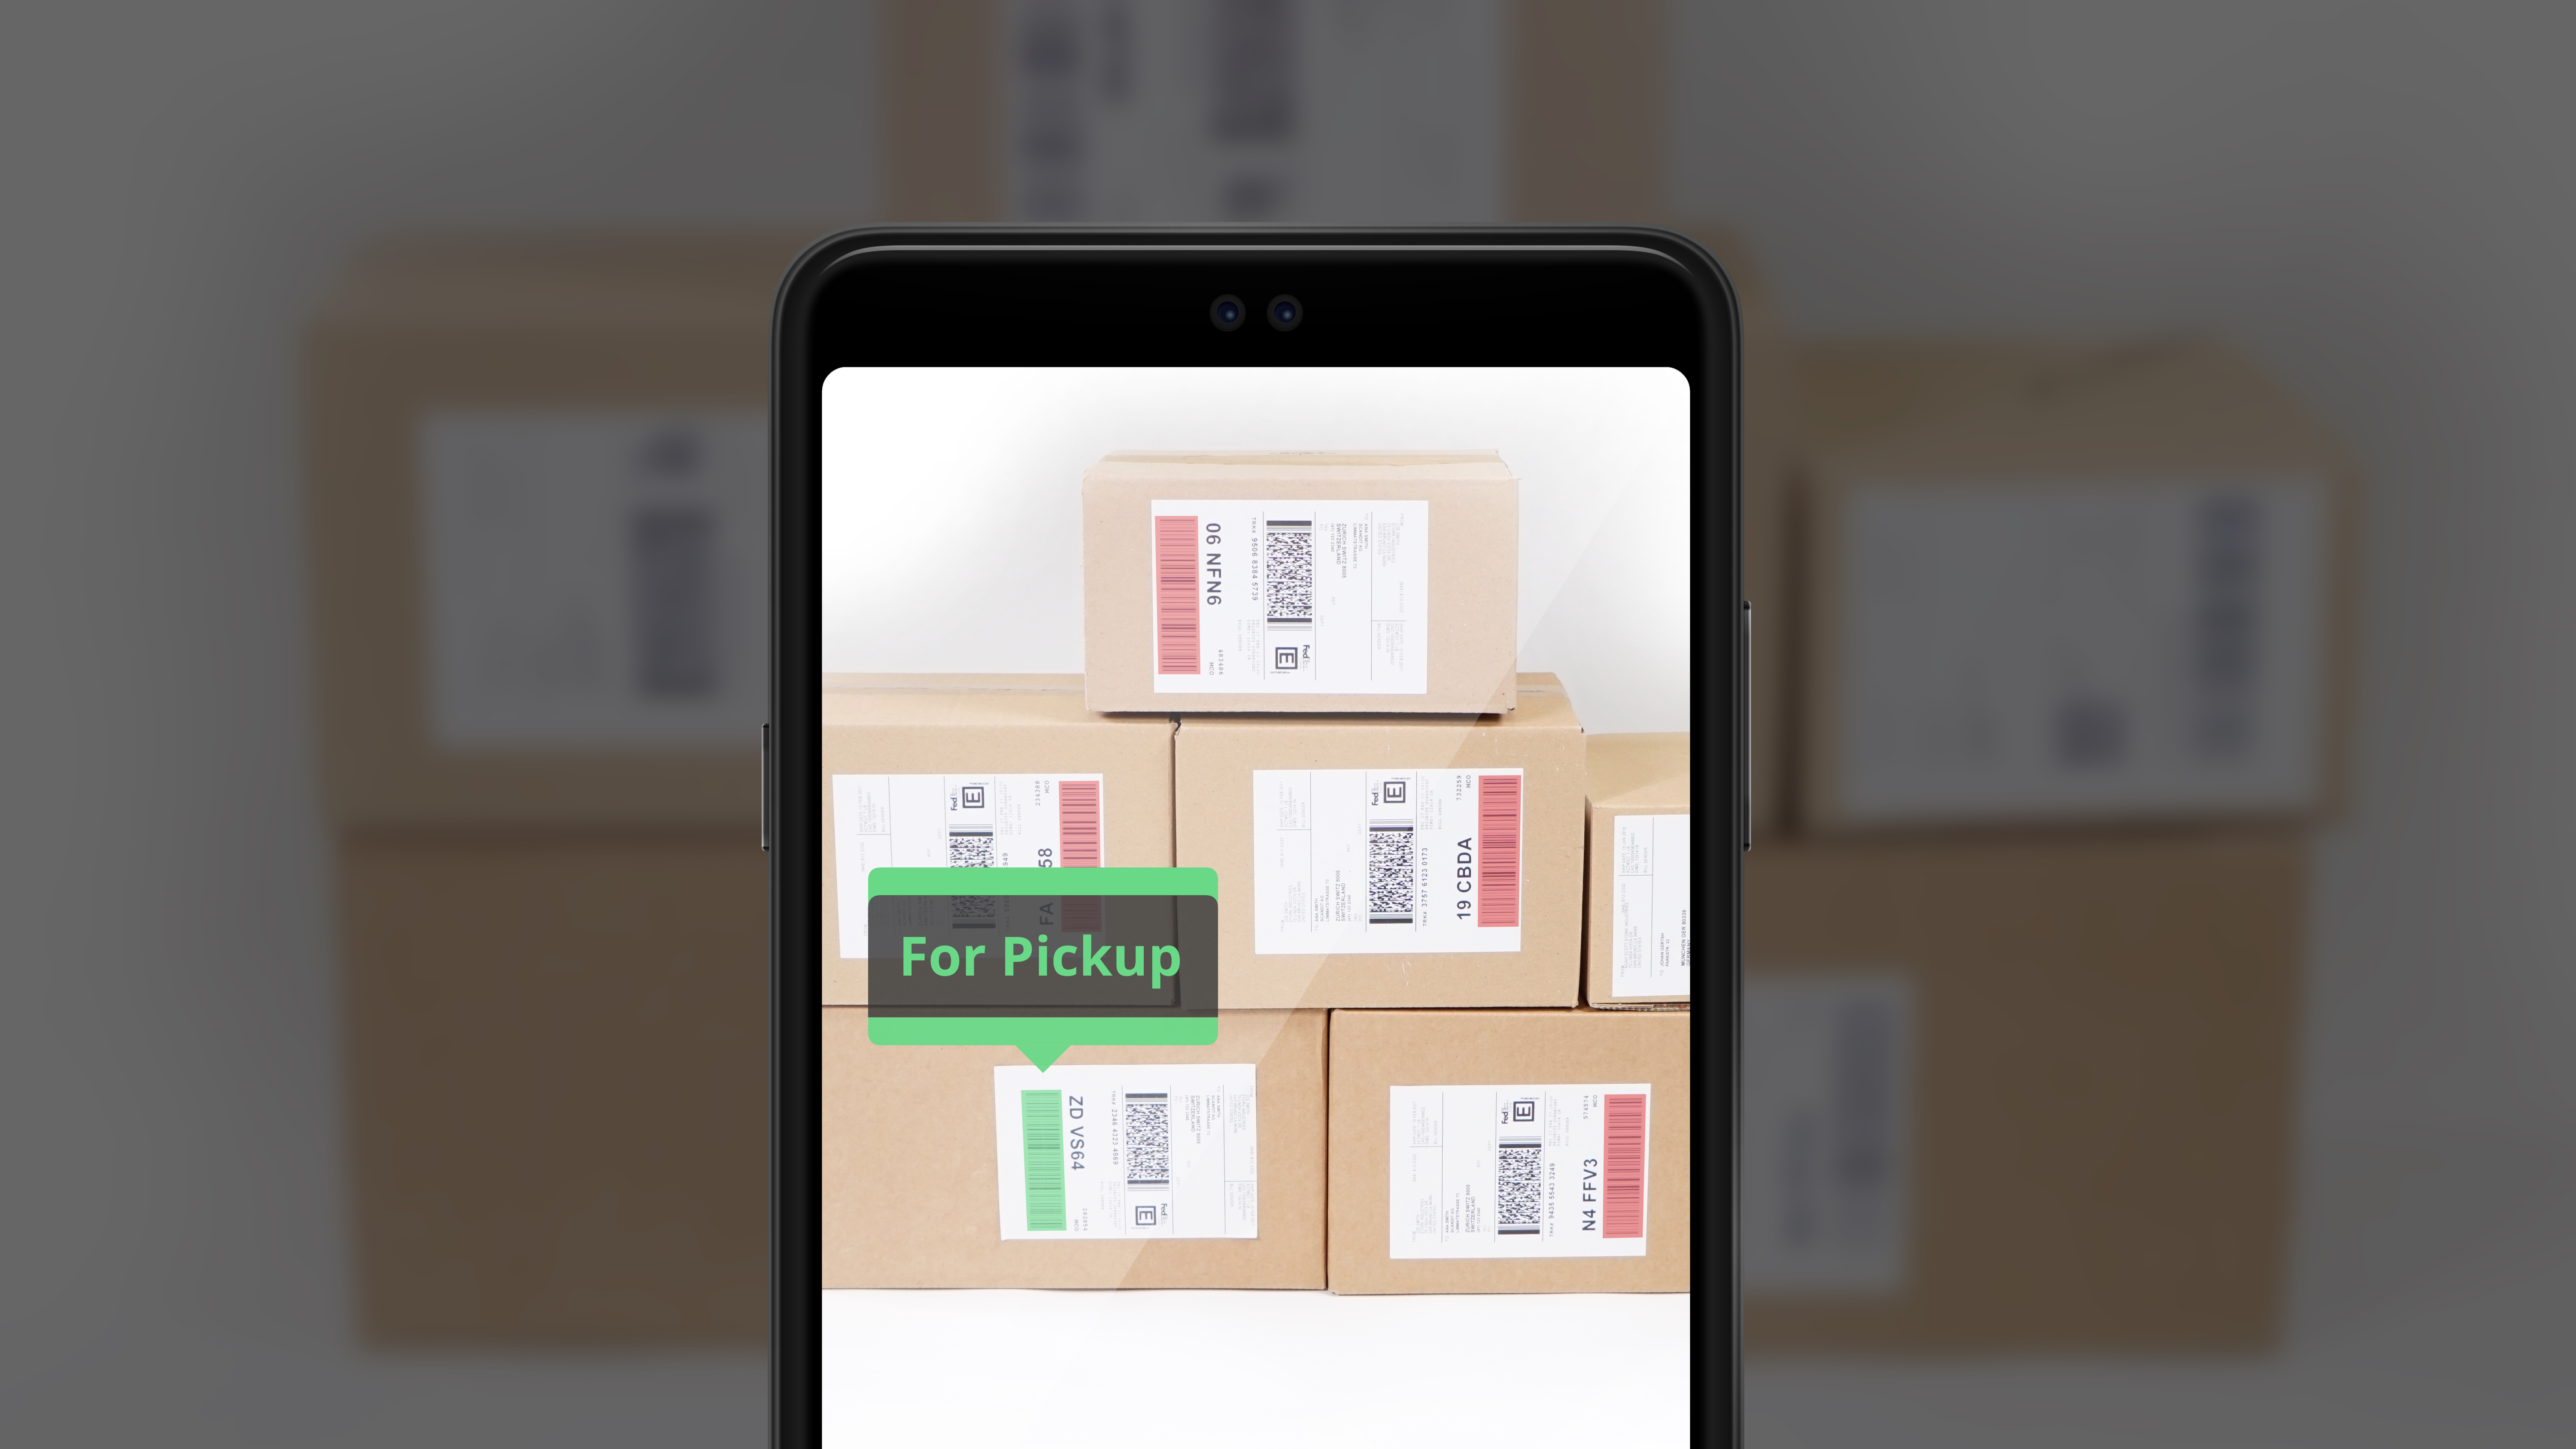 Hermes invests in smartphone barcode scanning technology